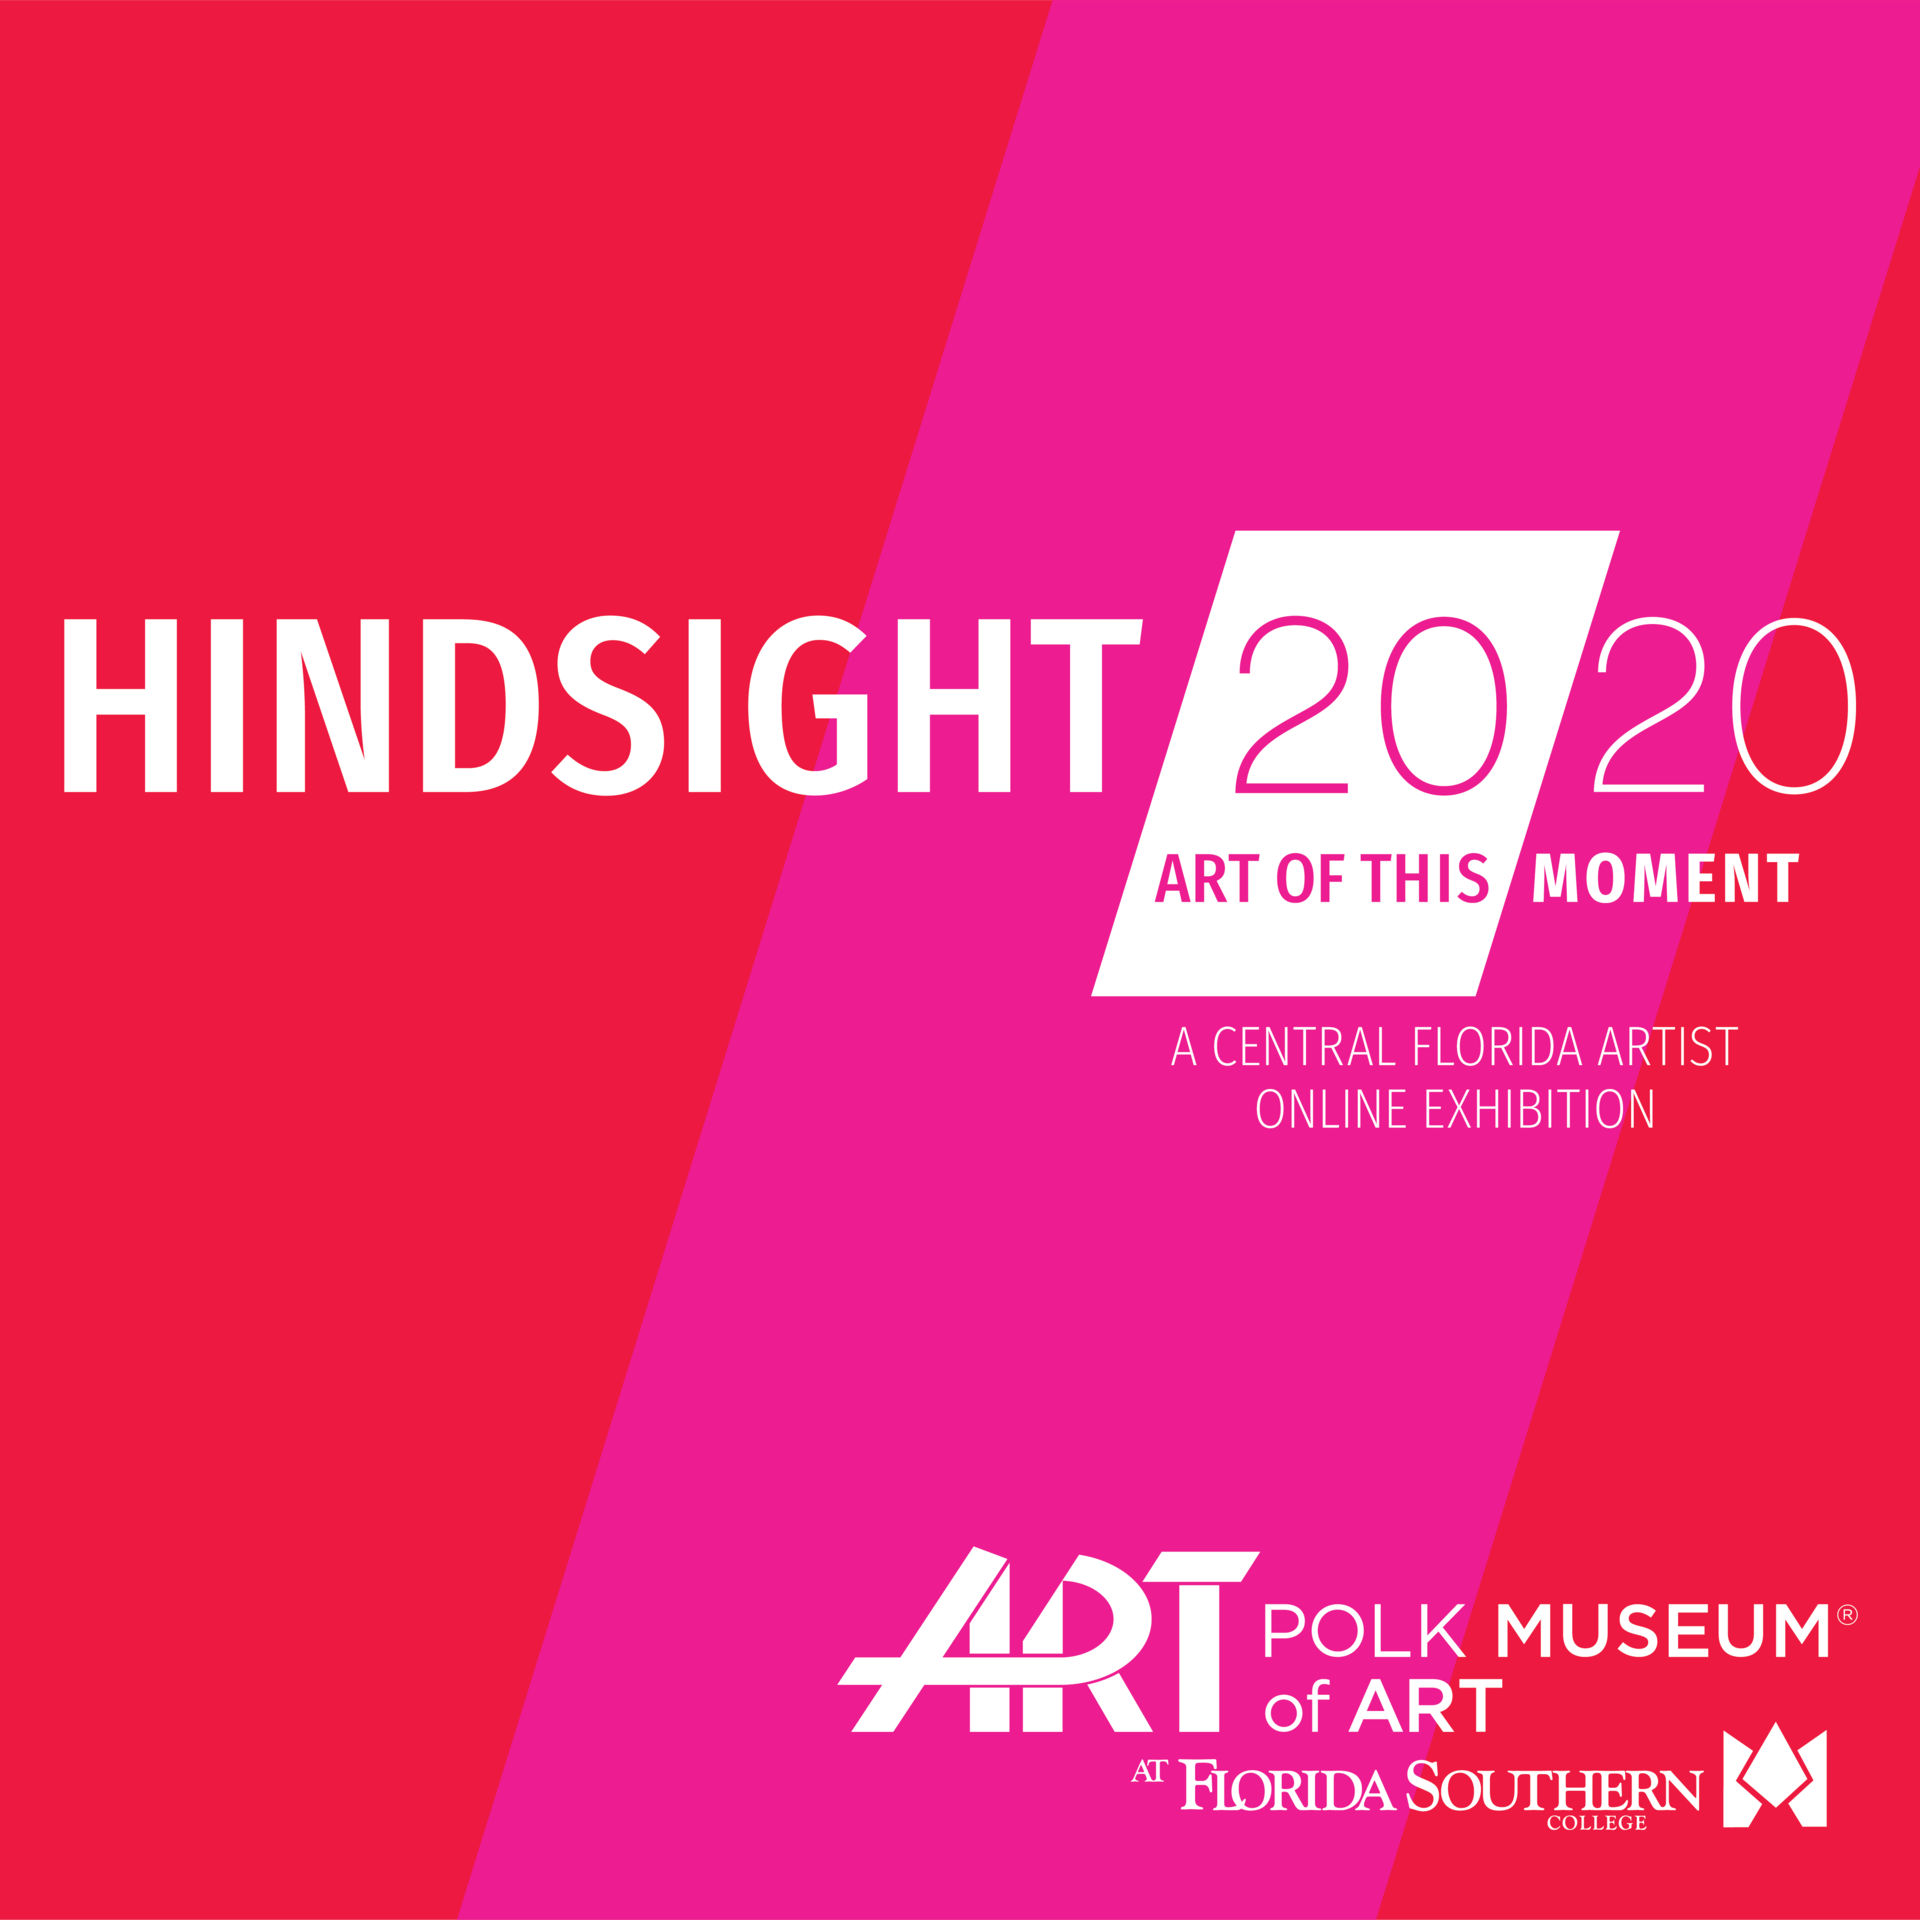 Red/Pink background Hindsight 2020 Art of this Moment: A Central Florida Artist Online Exhibition